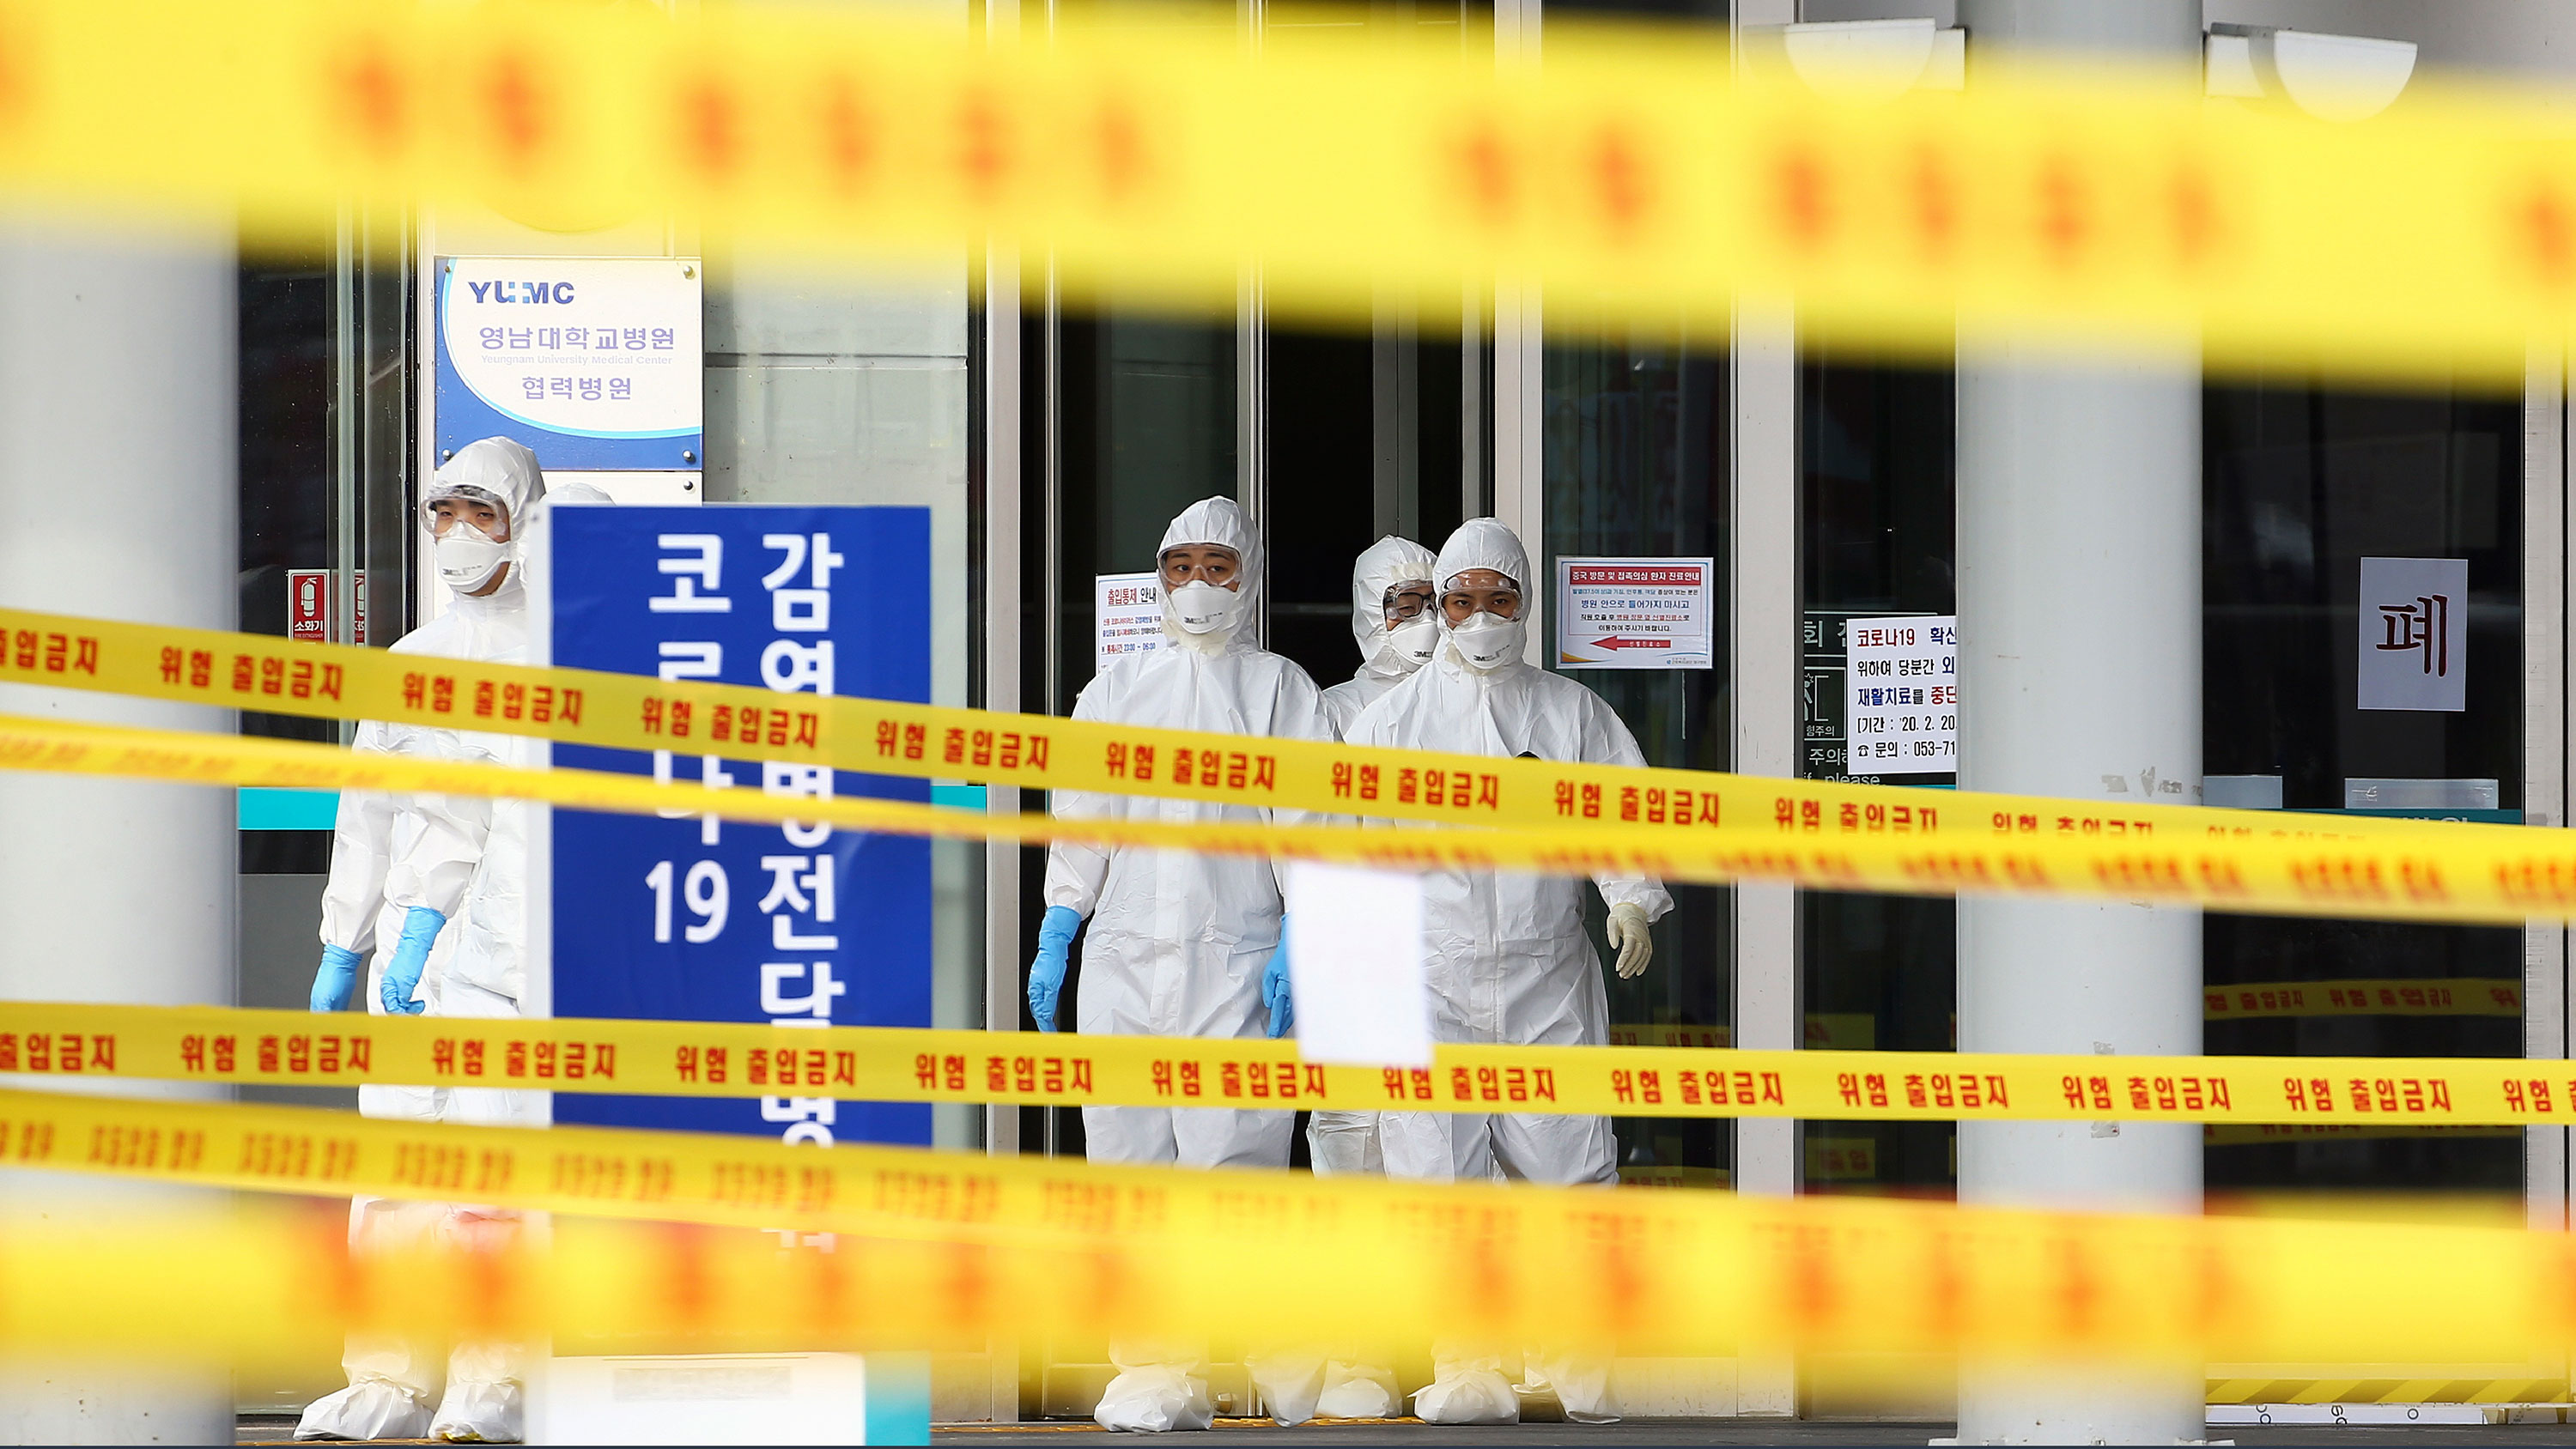 Medical staff stand outside a hospital in Daegu, South Korea on March 1.